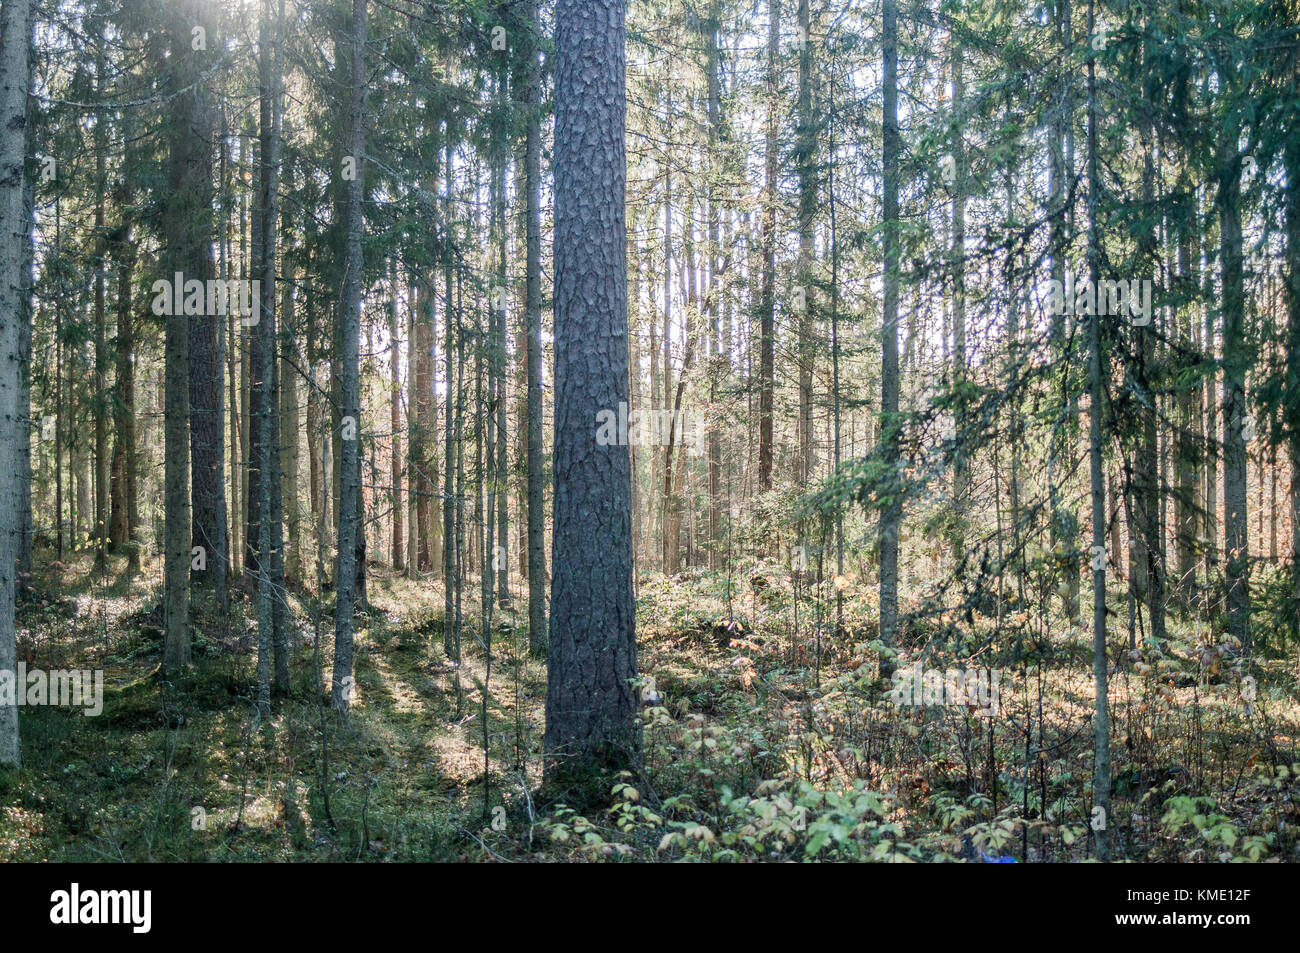 Forest in late autumn. - Stock Image